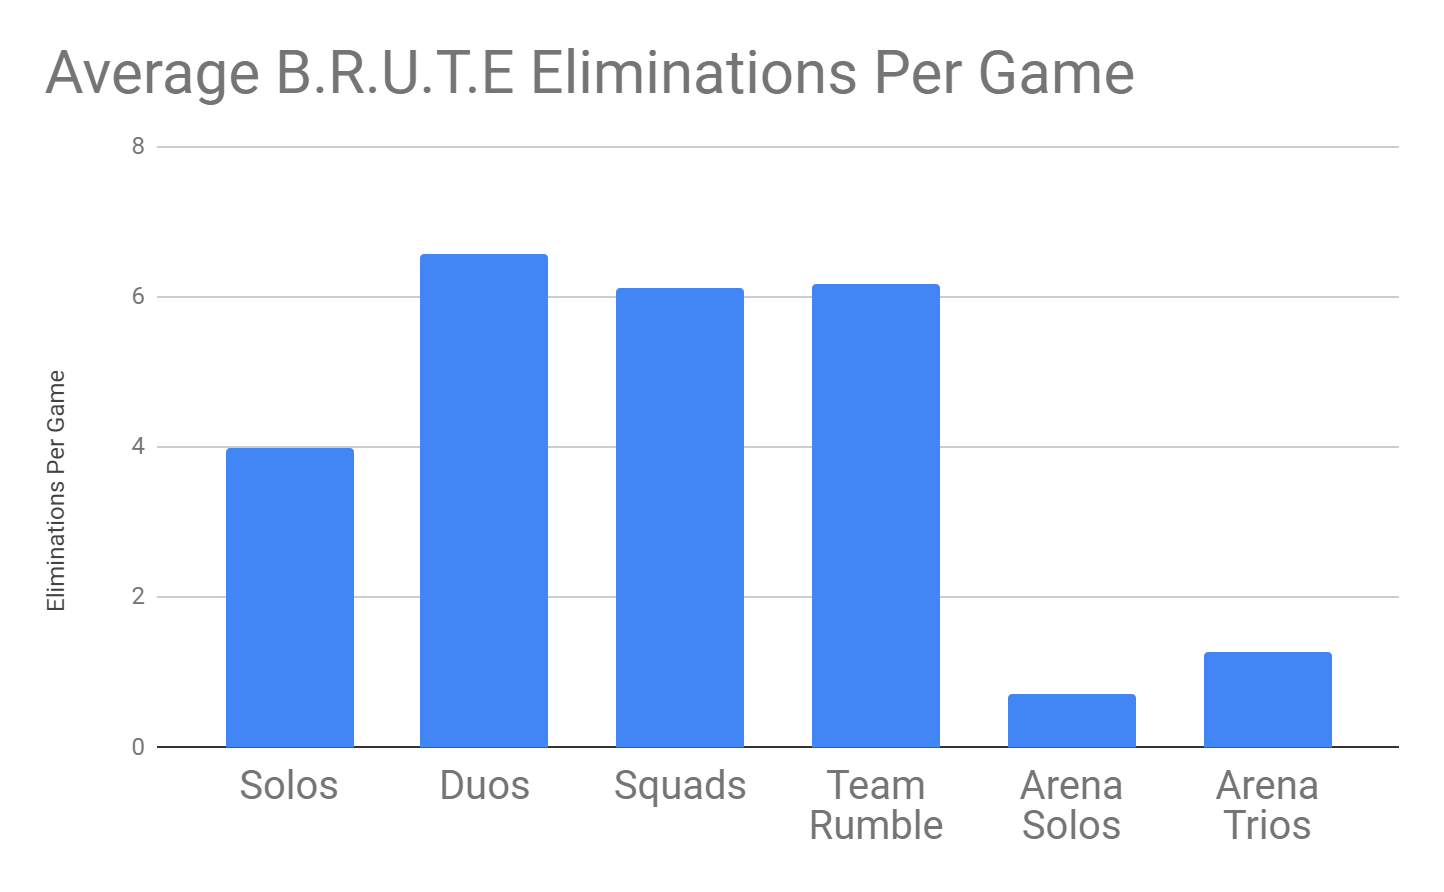 chart1.png